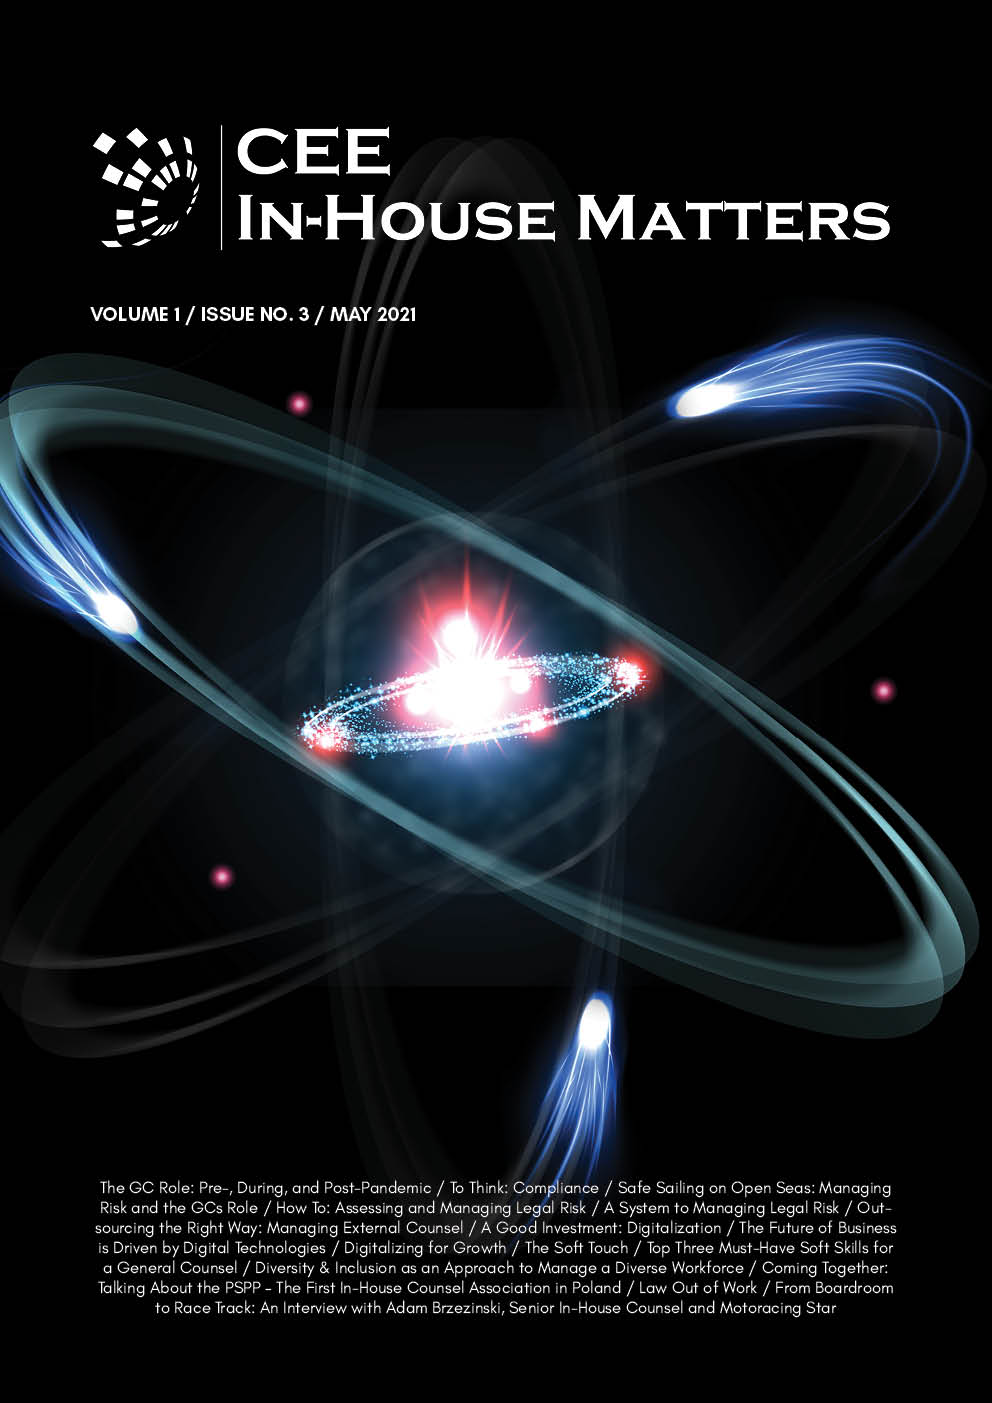 CEE In-House Matters: Issue 1.3